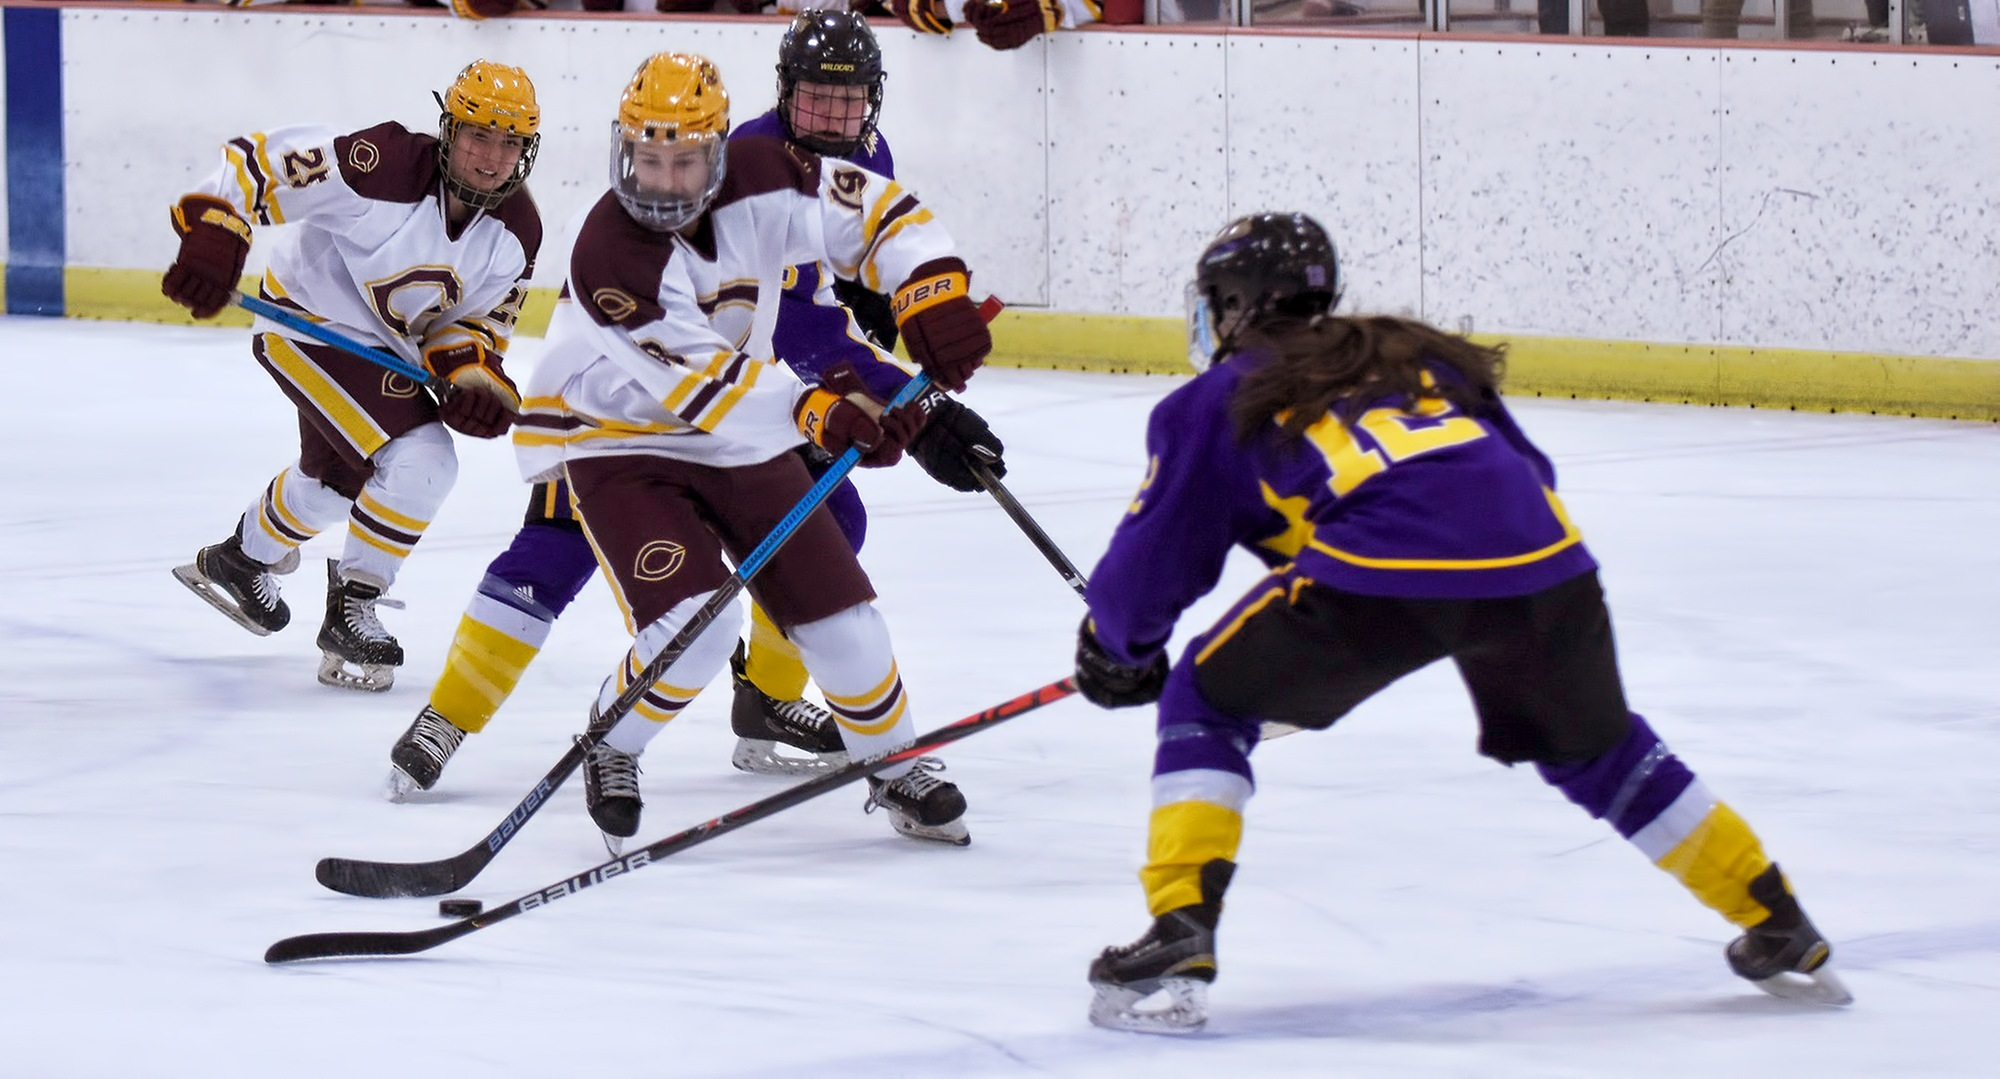 The Cobbers bring the puck up the ice during their series finale with St. Kate's.